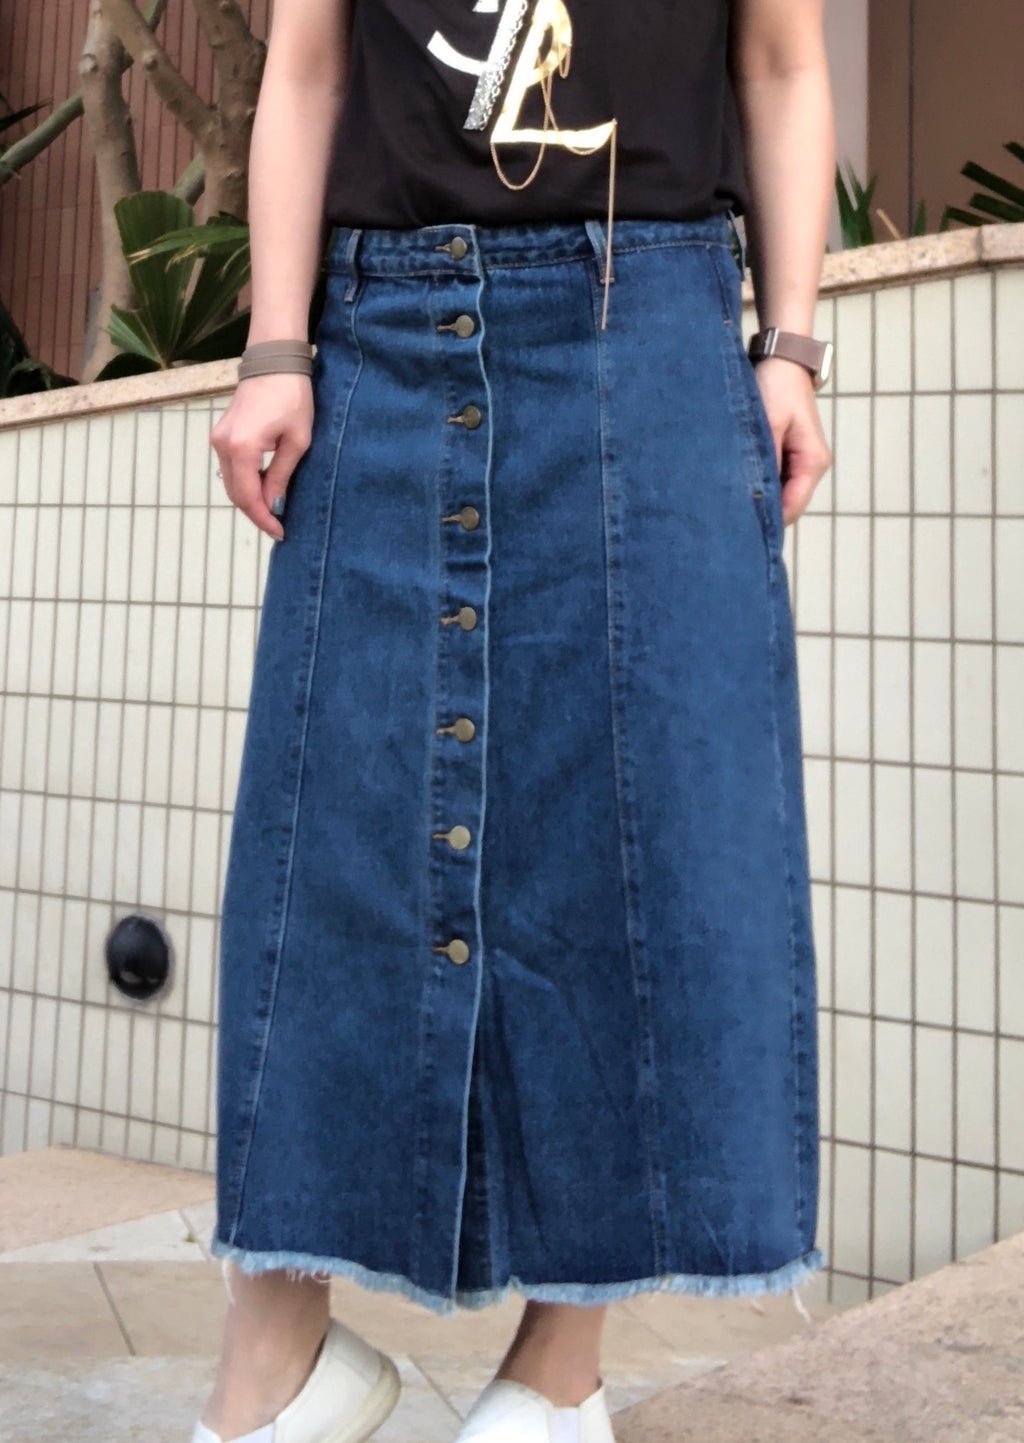 Samantha button denim skirt